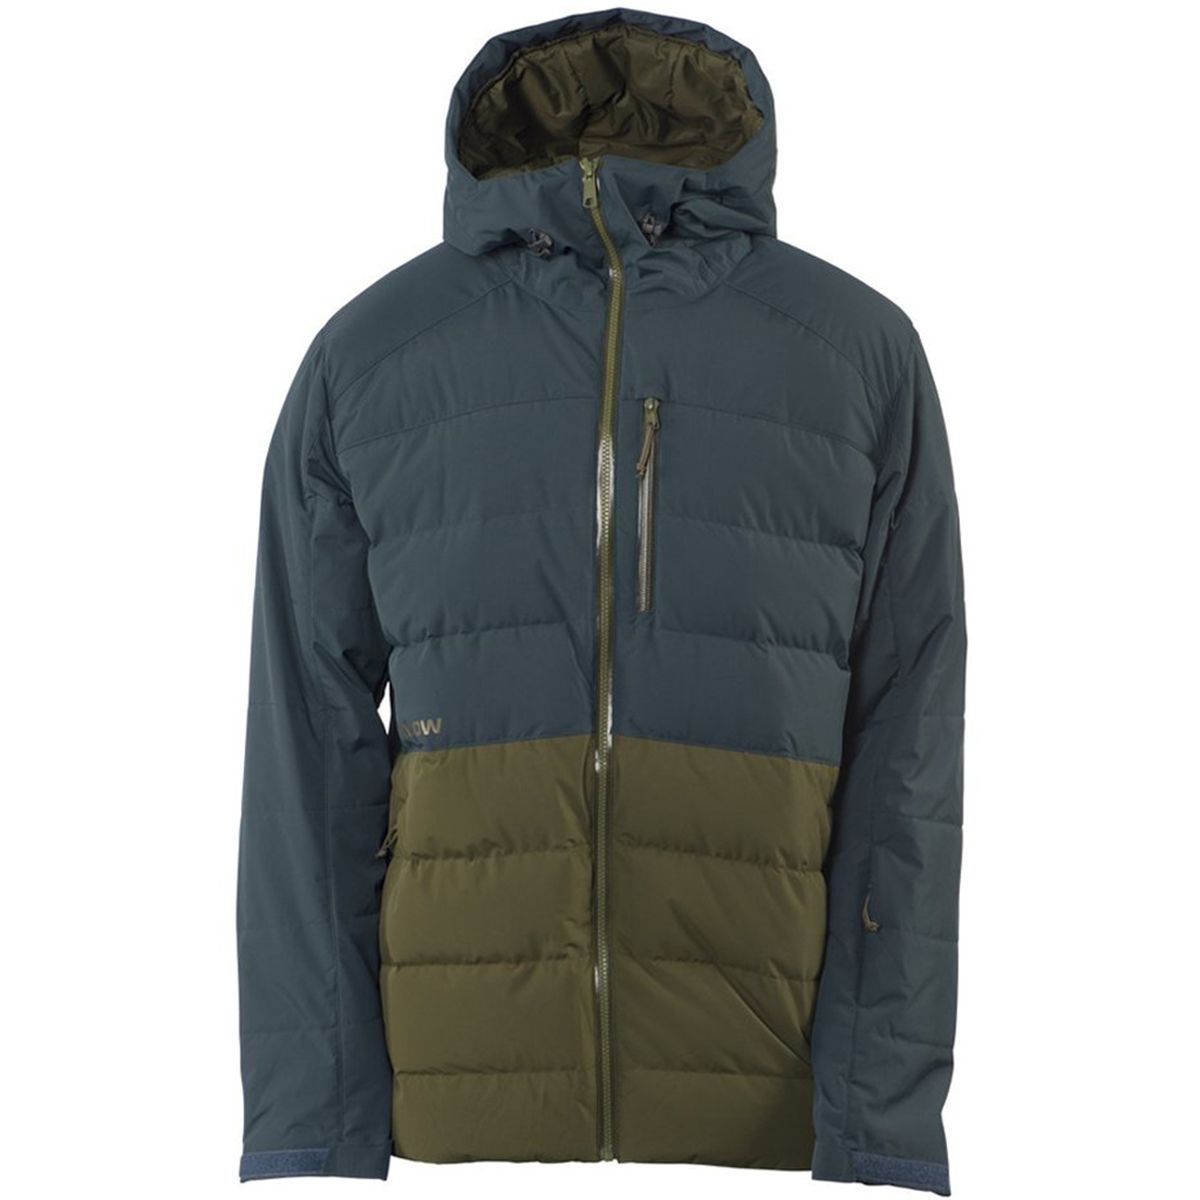 Flylow Gear Colt Down Jacket – Men 's Neptune / Army , M B075LNGXW6